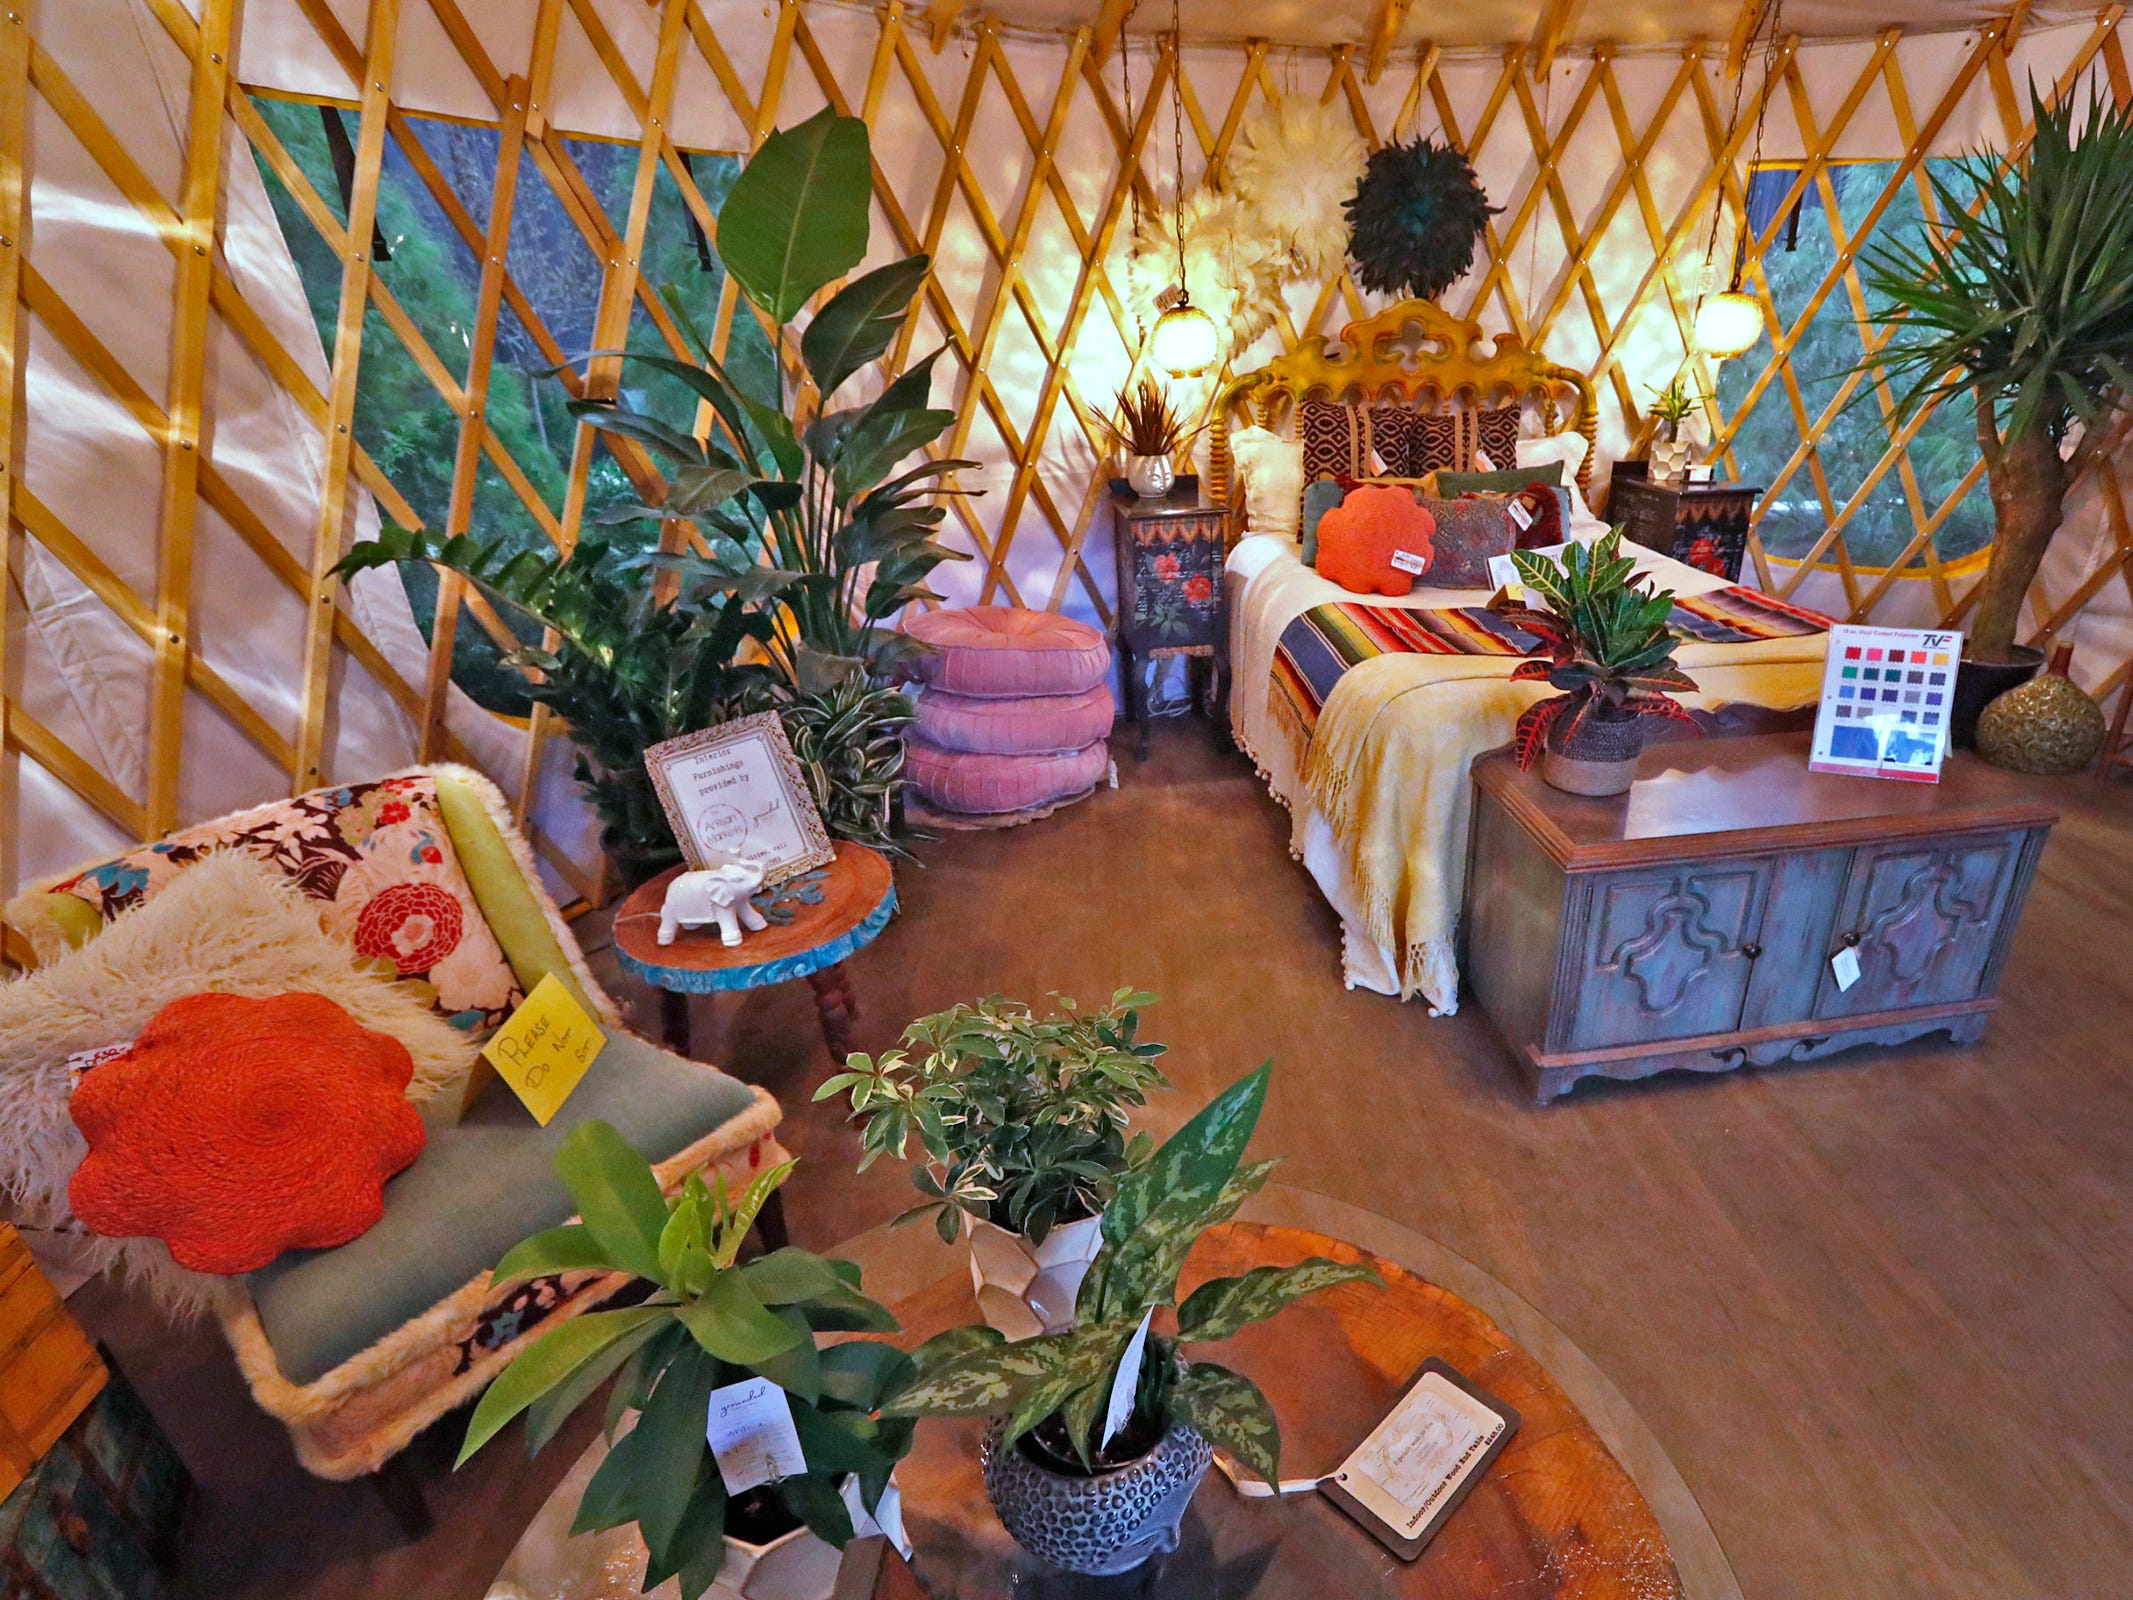 A bed is displayed in a Yurts of America yurt at the Indiana Flower + Patio Show, at the Indiana State Fairgrounds, Sunday, March 10, 2019.  New Leaf Landscape Design Studio worked with others to furnish and decorate the temporary living space.